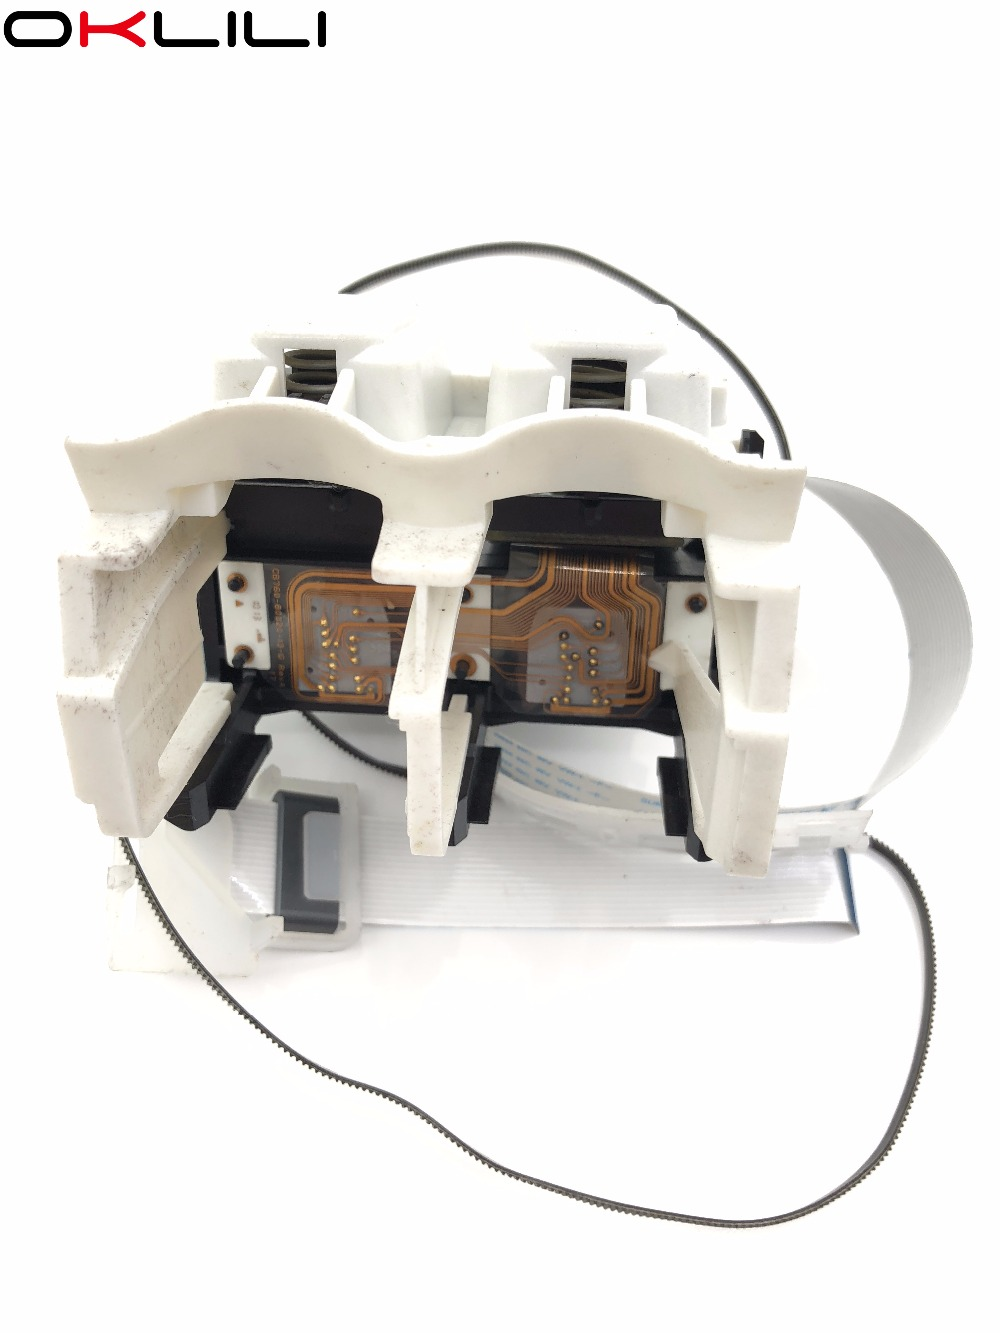 802 802XL Carriage Unit Assembly ASSY for HP DeskJet 1000 1010 1050 1051 1055 1510 1512 2000 2010 2050 2060 2510 2540 3000 3050 2pcs ink cartridge compatible for hp 122 xl for hp deskjet 1000 1050 2000 2050 2050s 3000 3050a 3052a 3054 1010 1510 2540